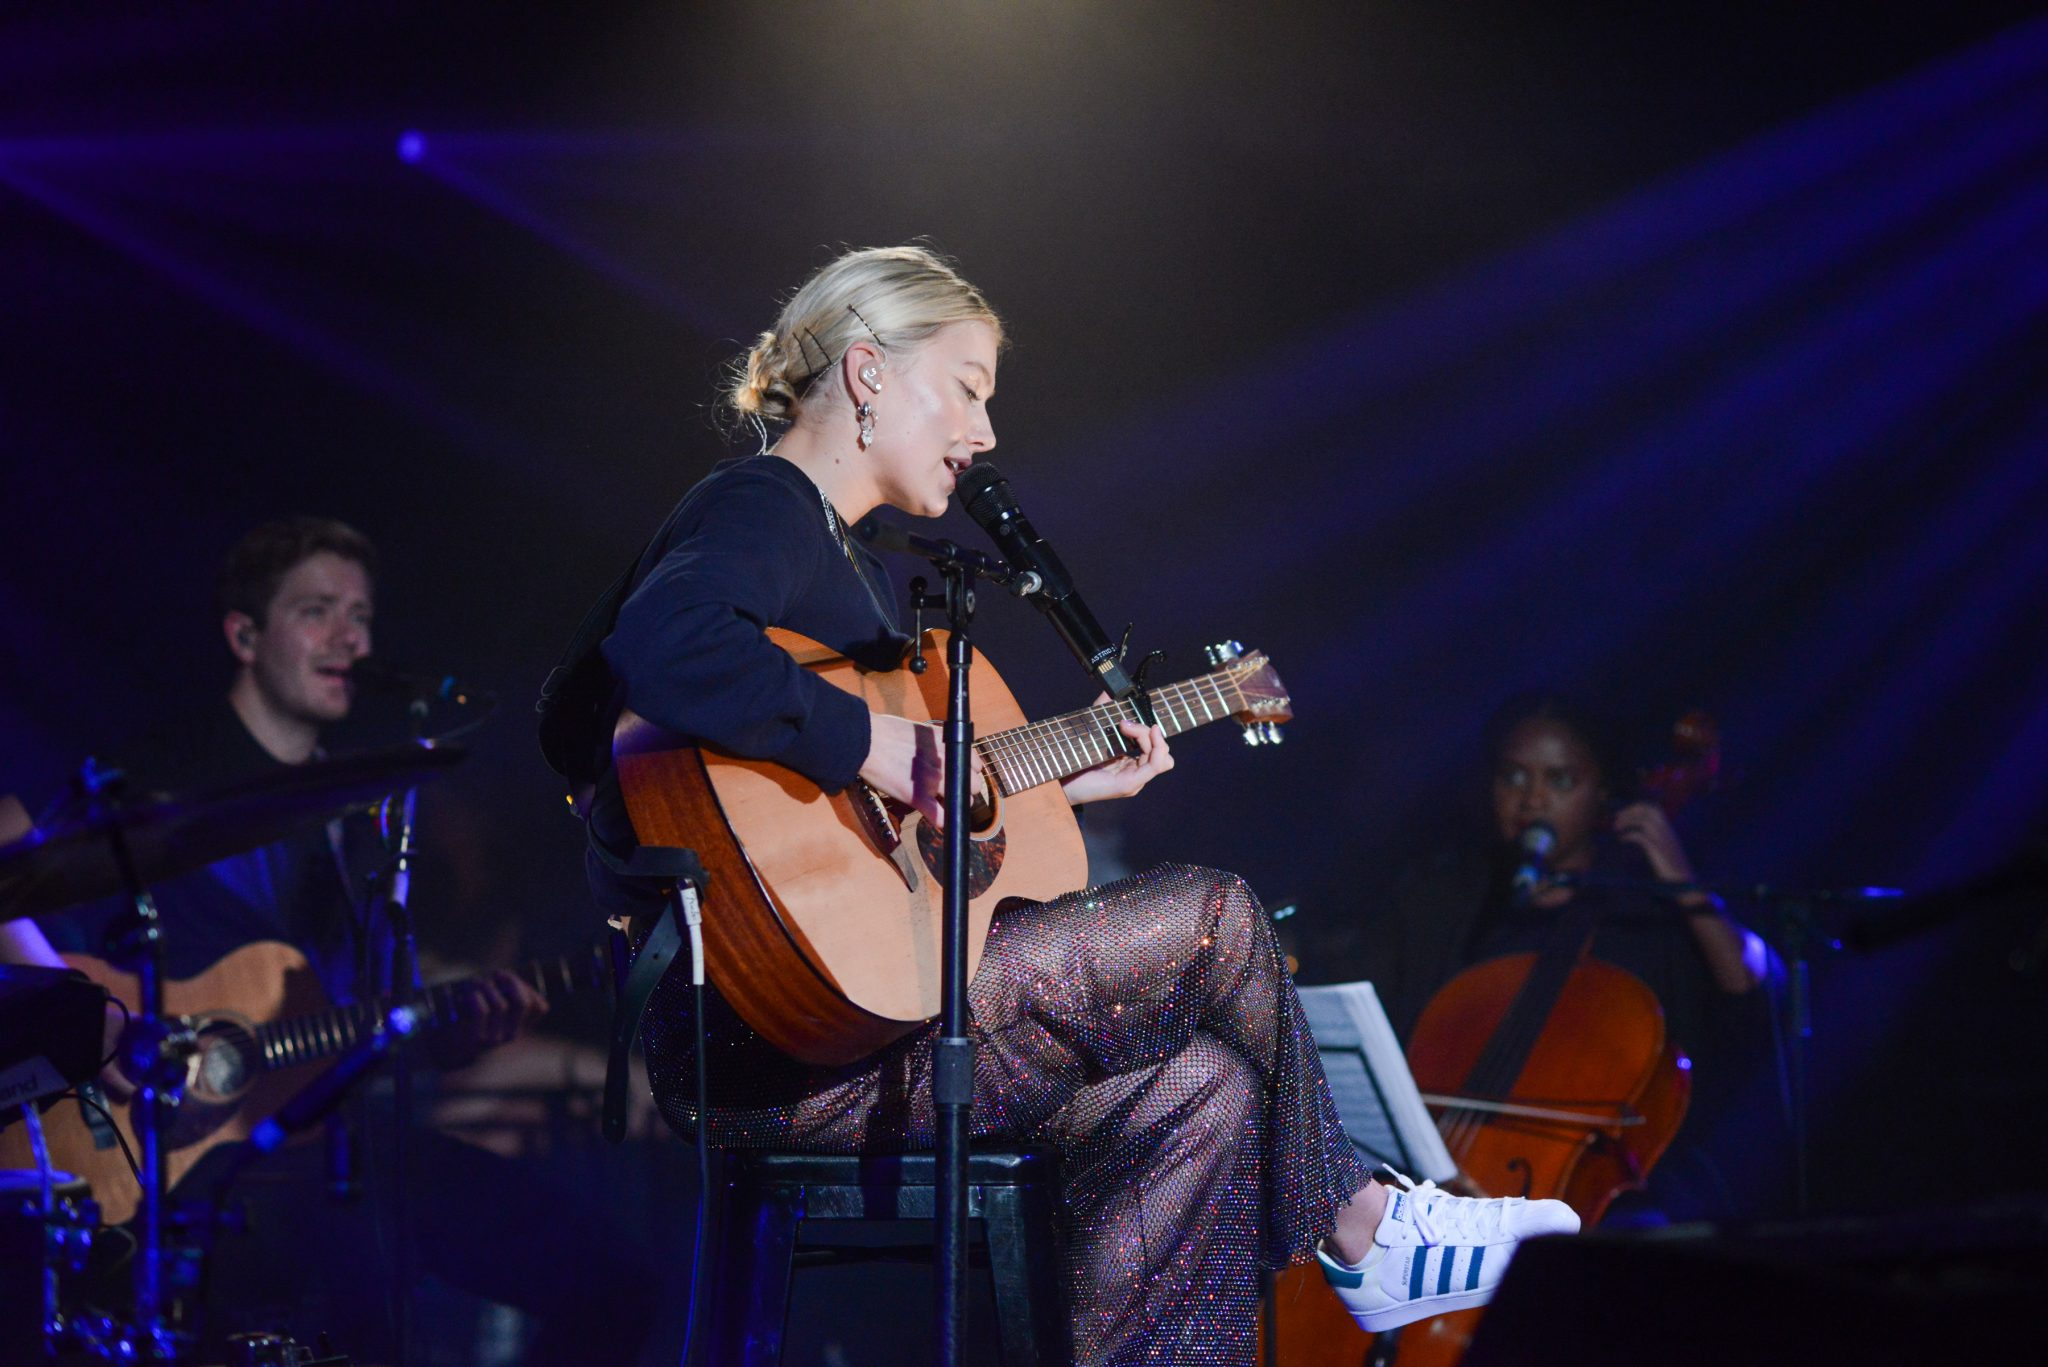 Astrid S performed a show on her Stripped Down Tour at Le Poisson Rouge in New York City on Tuesday, September 17, 2019. Photograph by Casey Kelbaugh